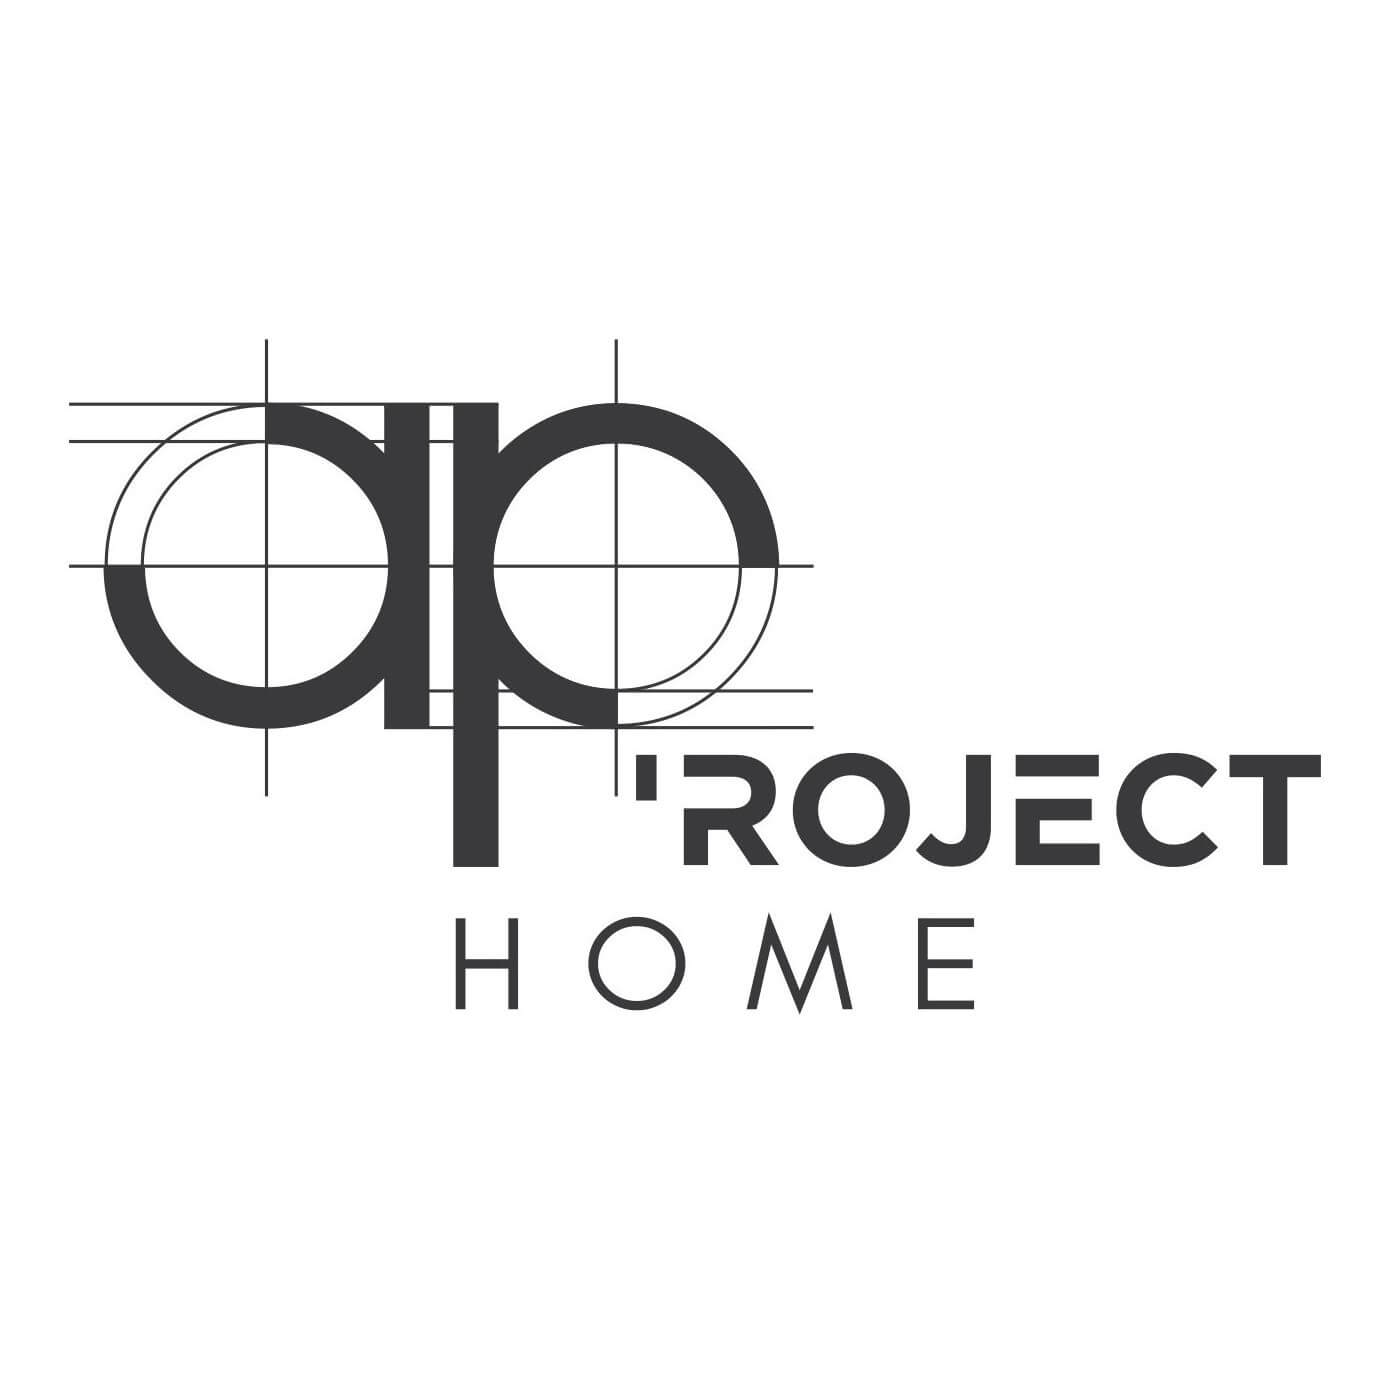 Ap'roject Home